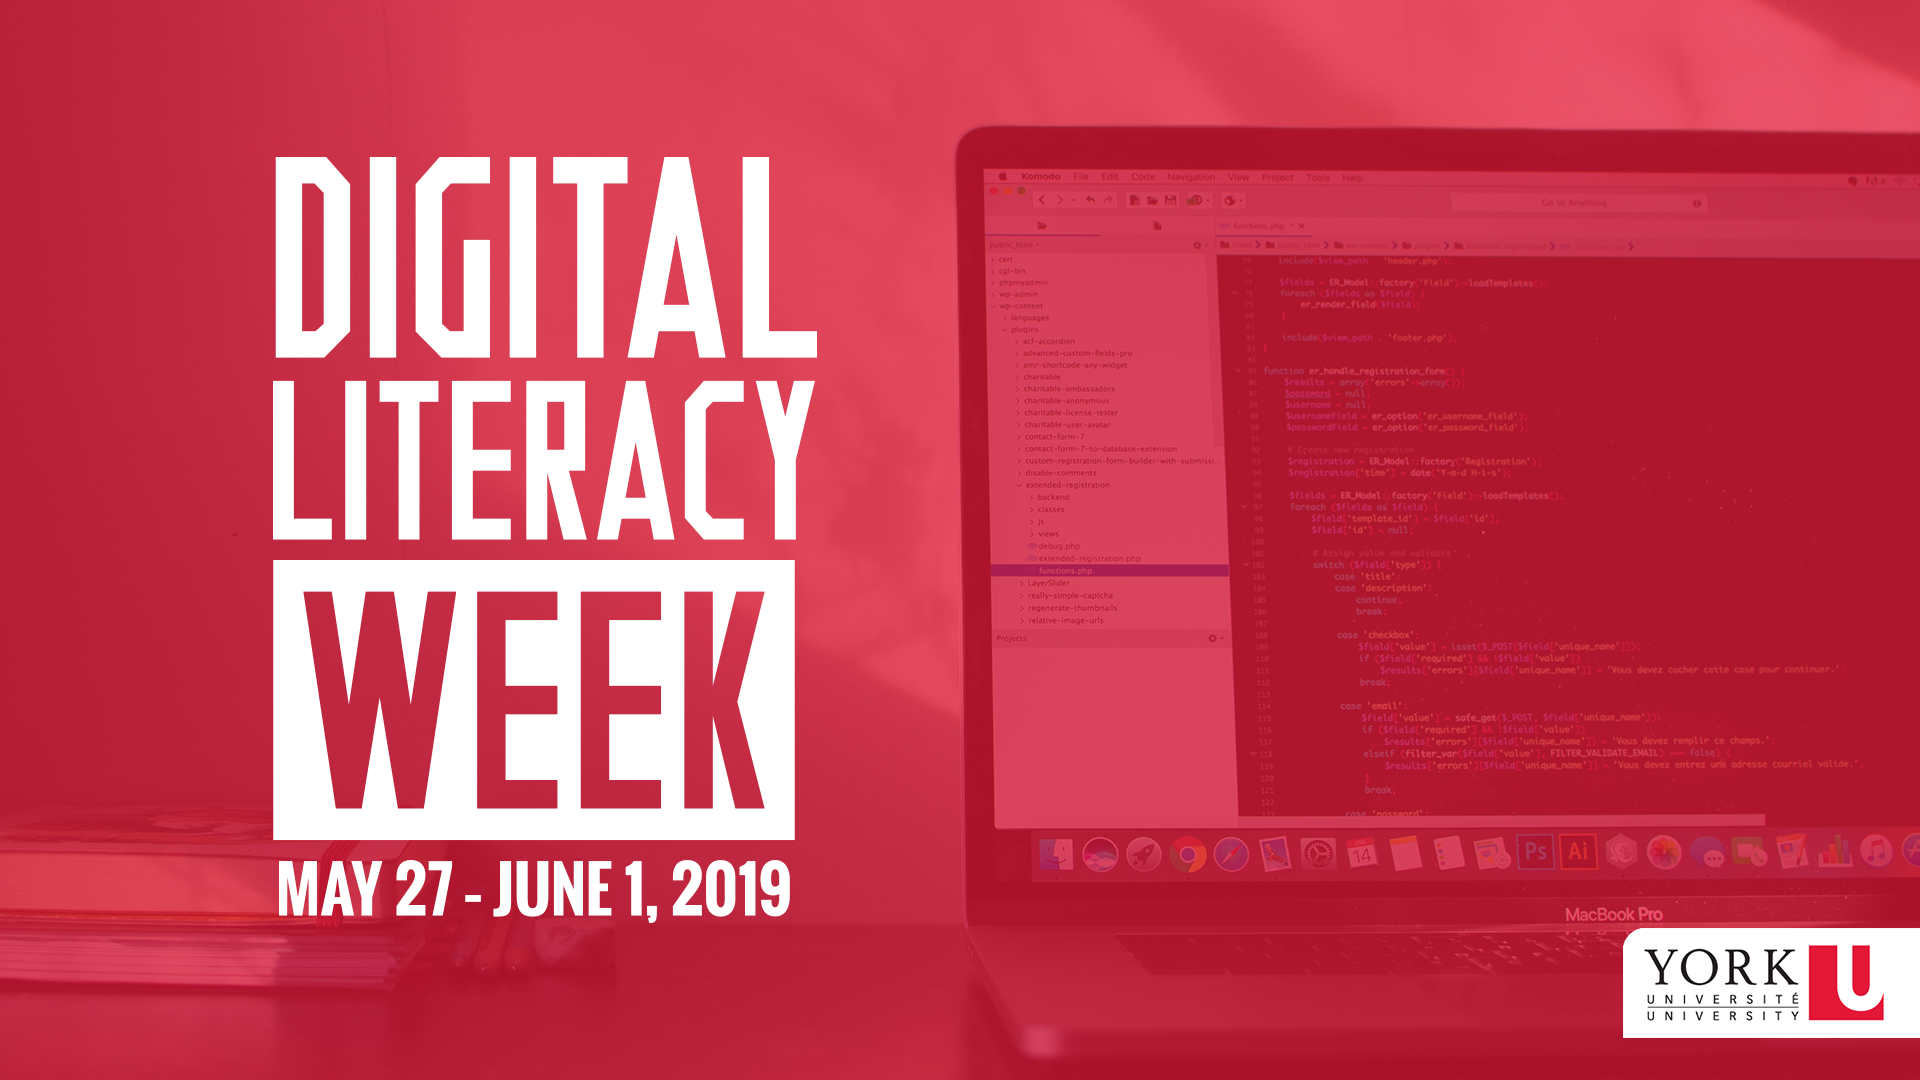 Red graphic with the Digital Literacy Week logo, promoting the event from May 27 to June 1